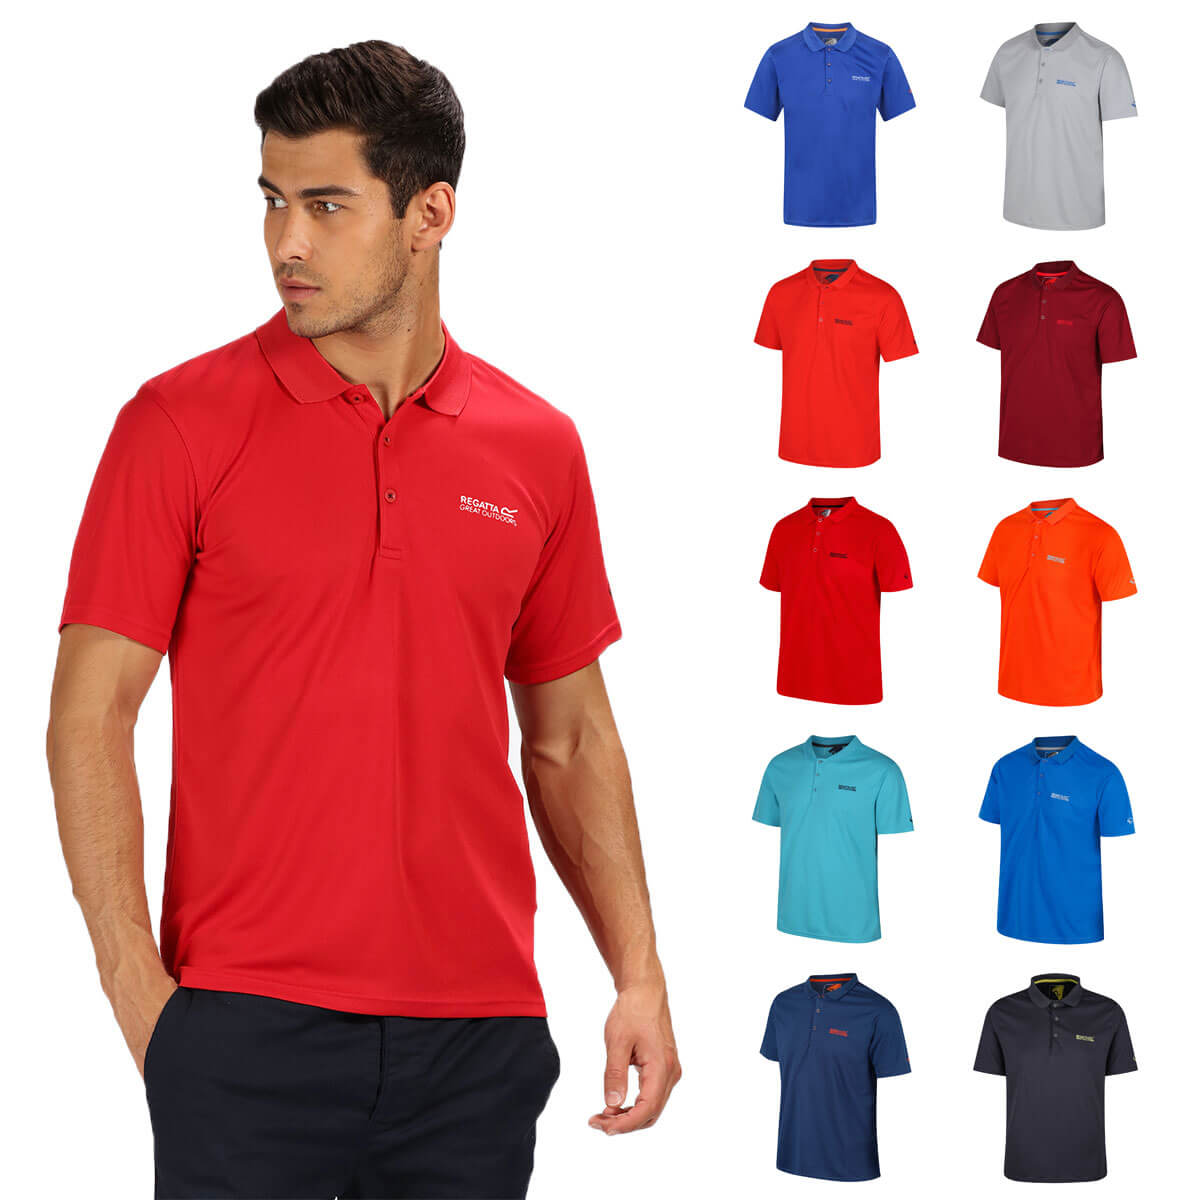 3fe870221 Details about Regatta Mens 2019 Maverick IV Ribbed Collar Wicking Polo Shirt  56% OFF RRP